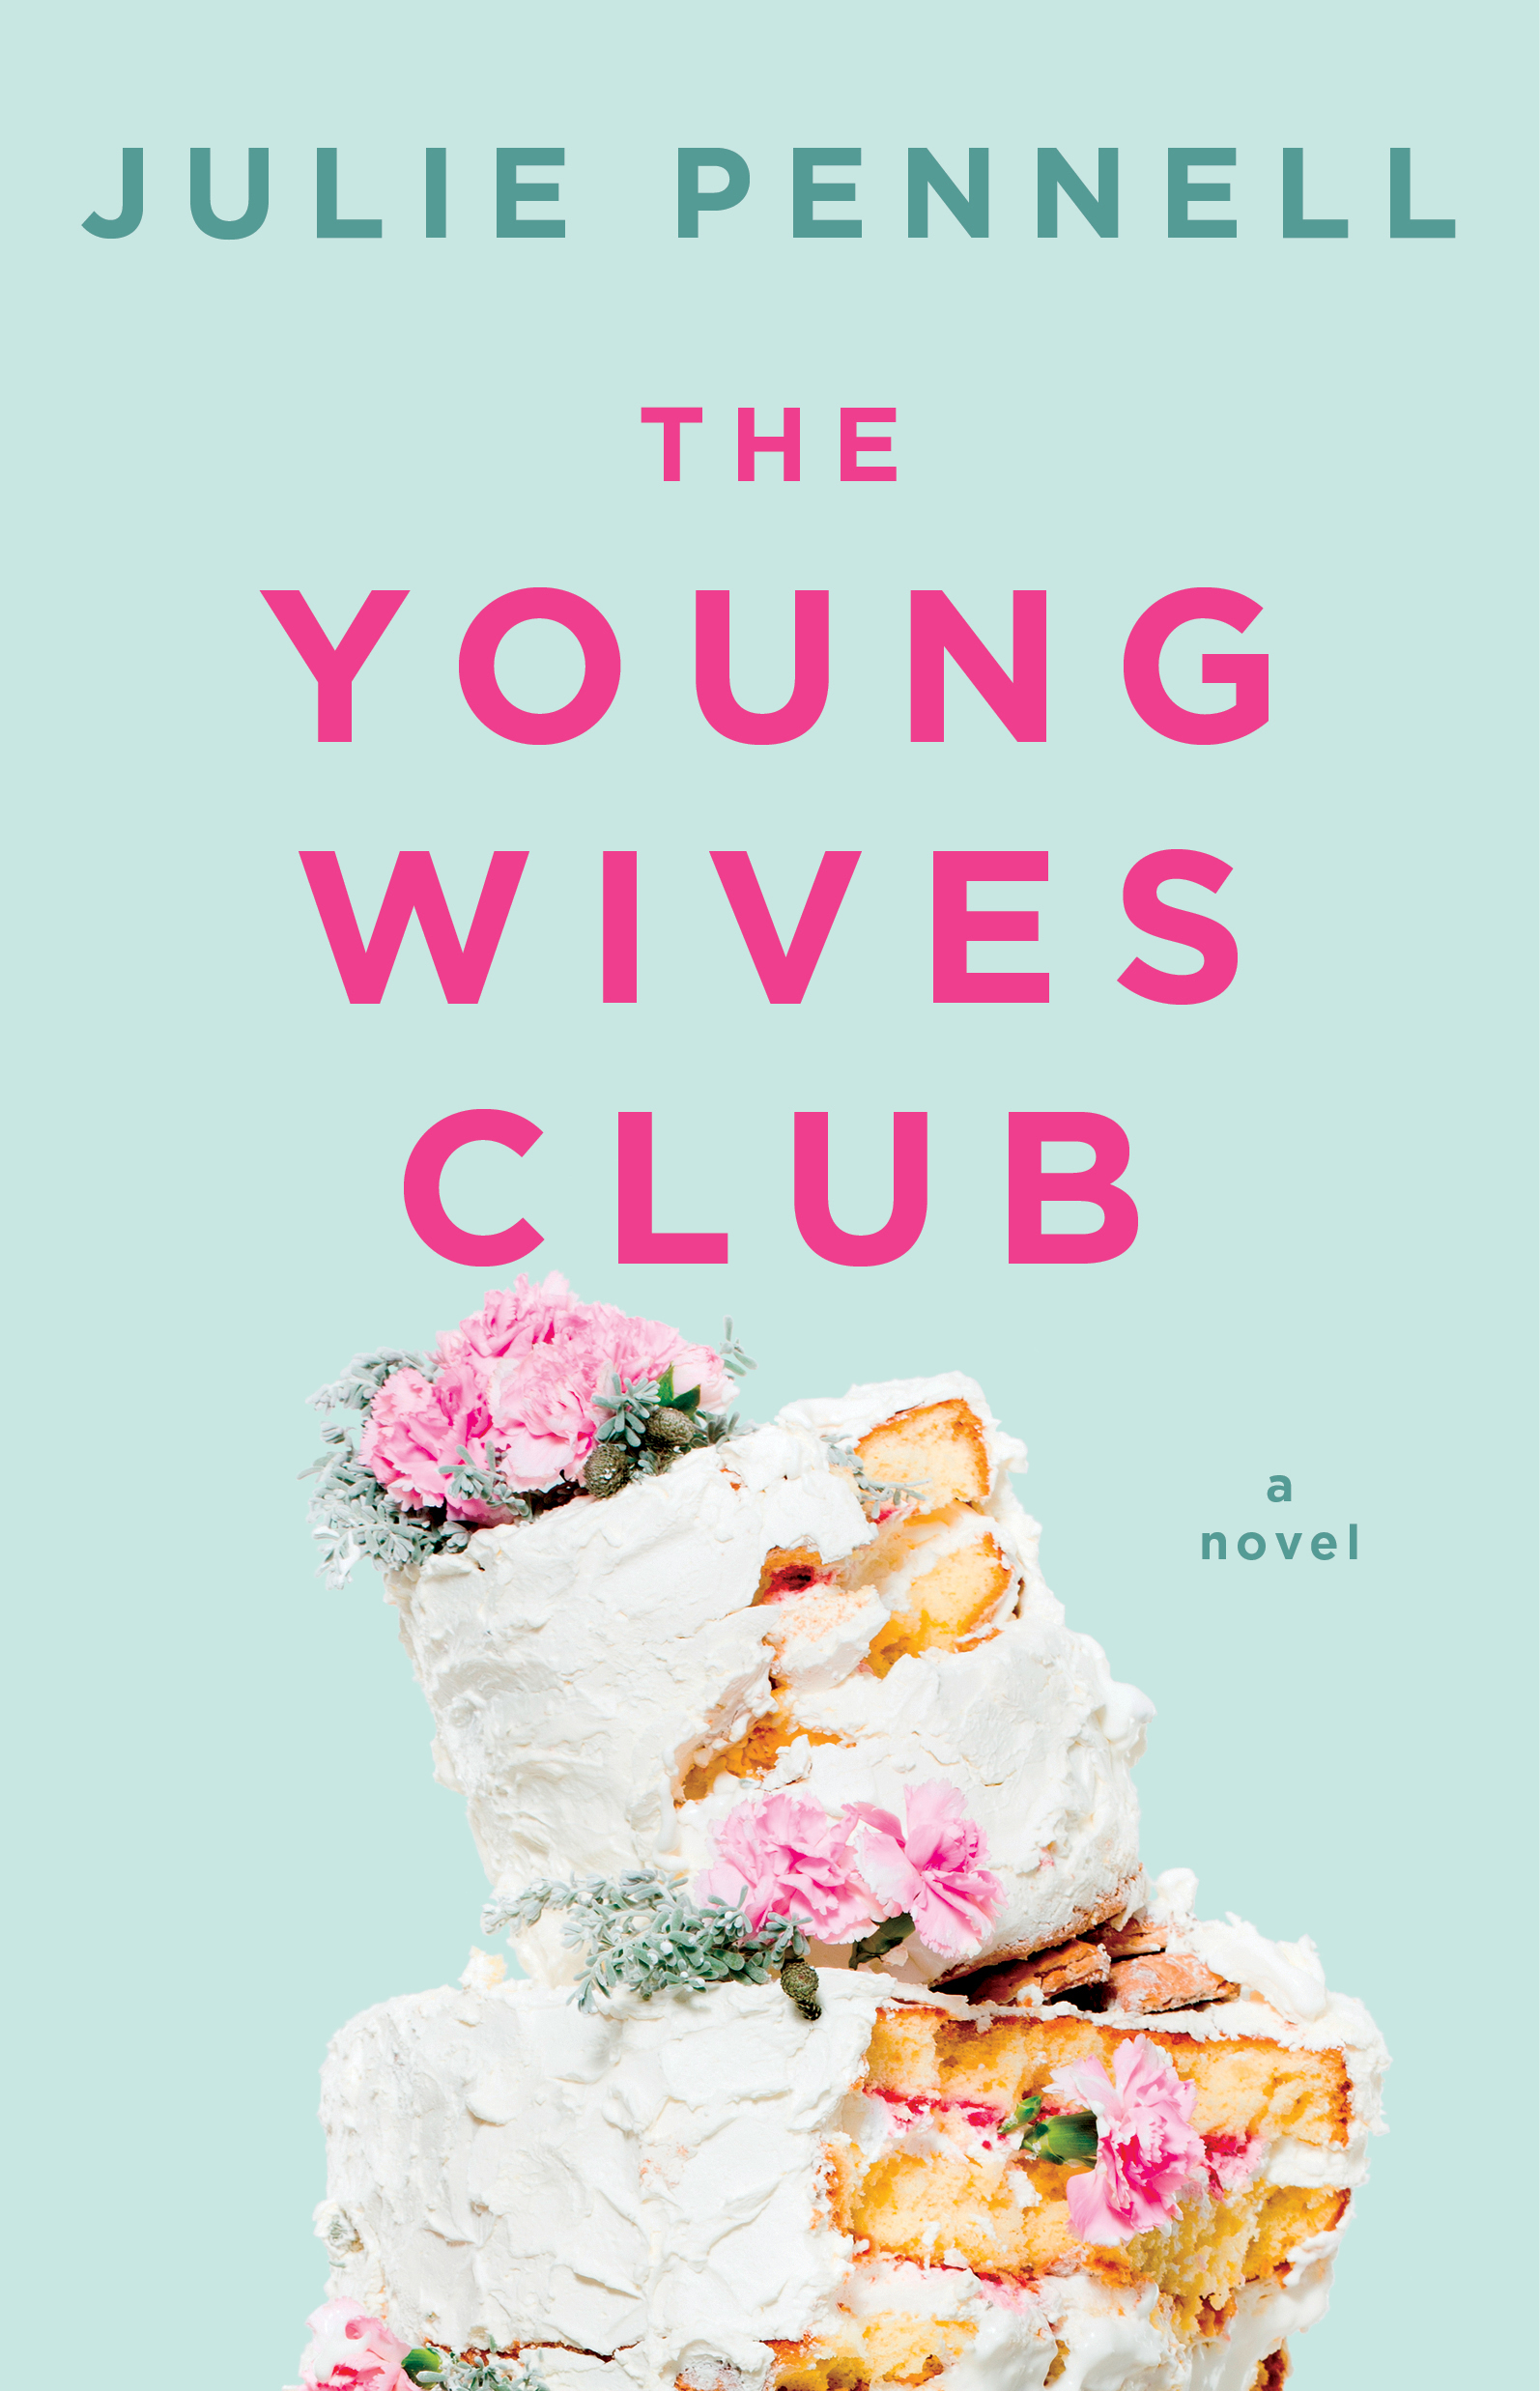 Book Launch: The Young Wives Club by Julie Pennell